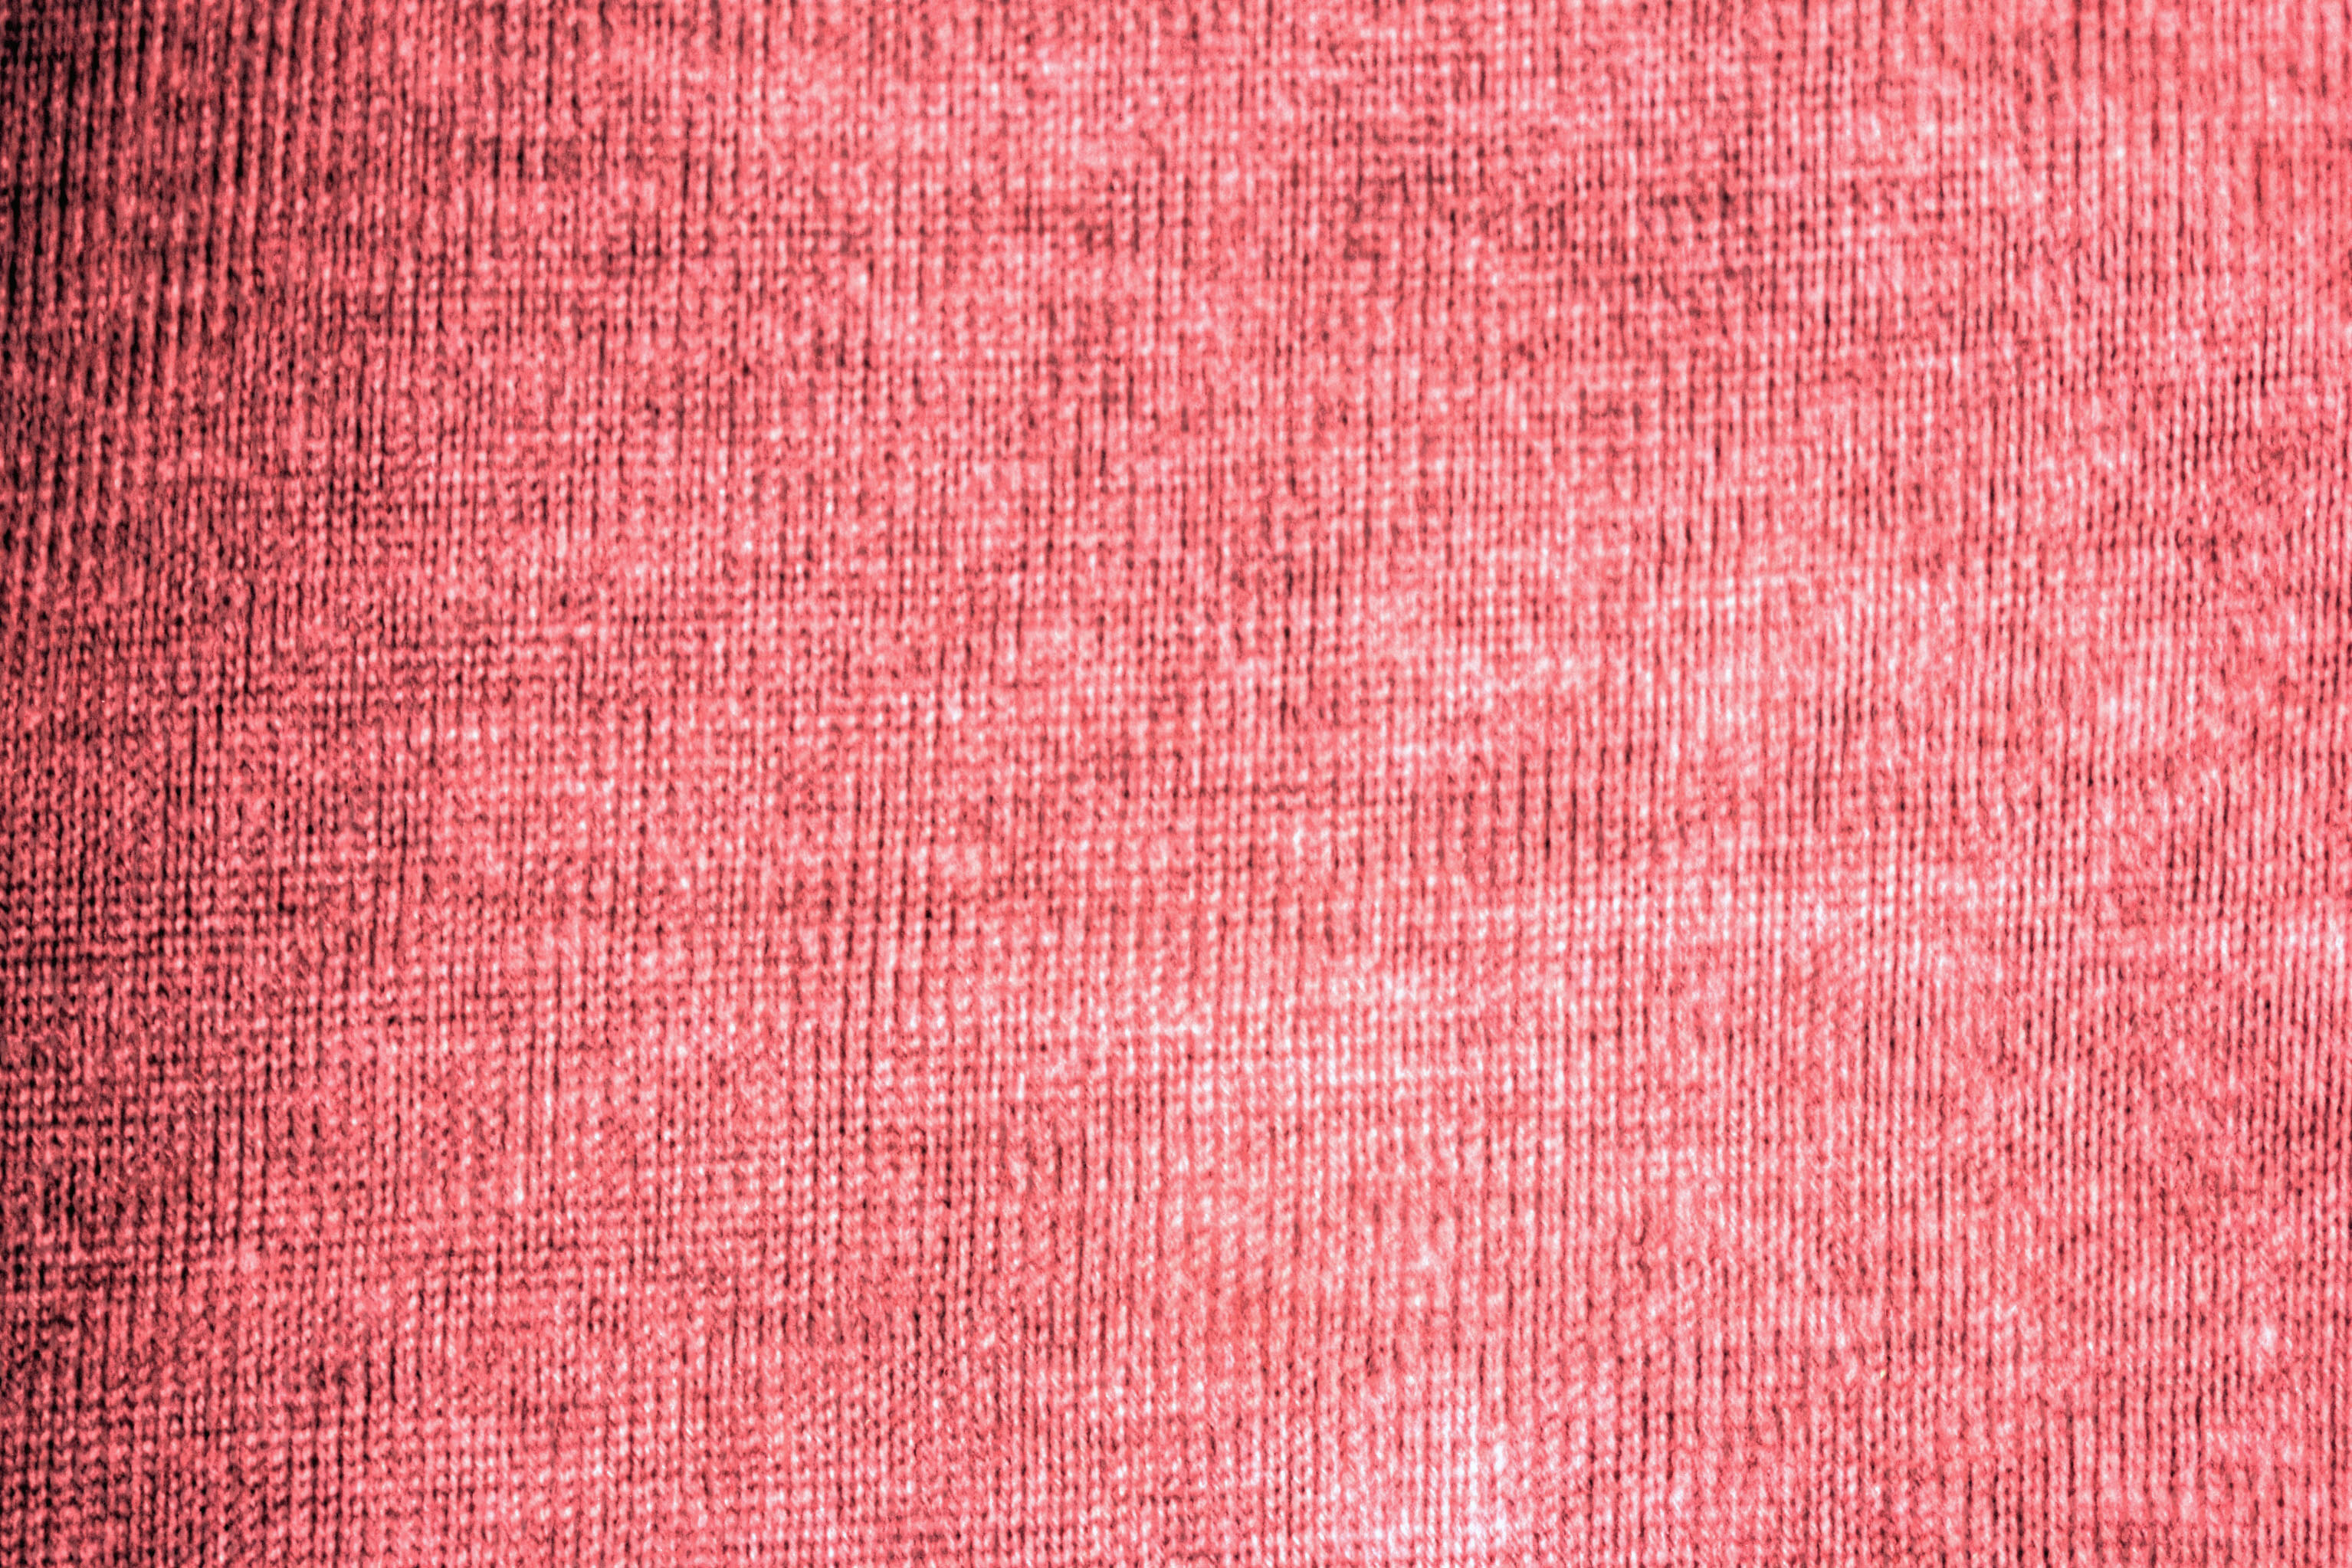 Pink Full Hd Wallpaper Red Fabric Texture Image Free Stock Photo Public